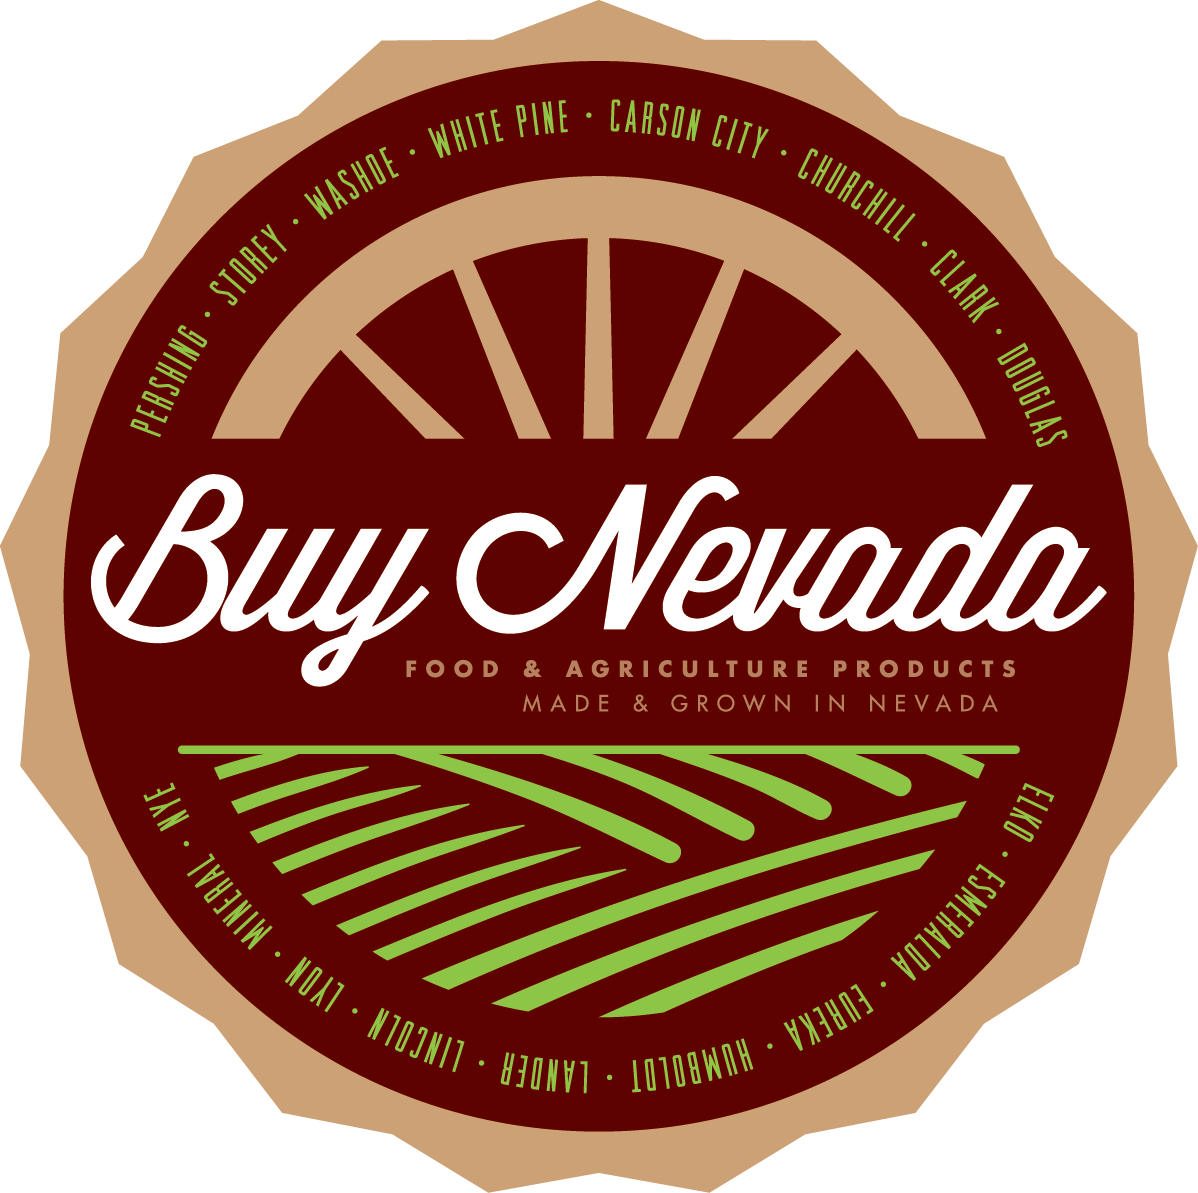 Nevada Dept. of Agriculture creates program to promote the state's food and agriculture businesses